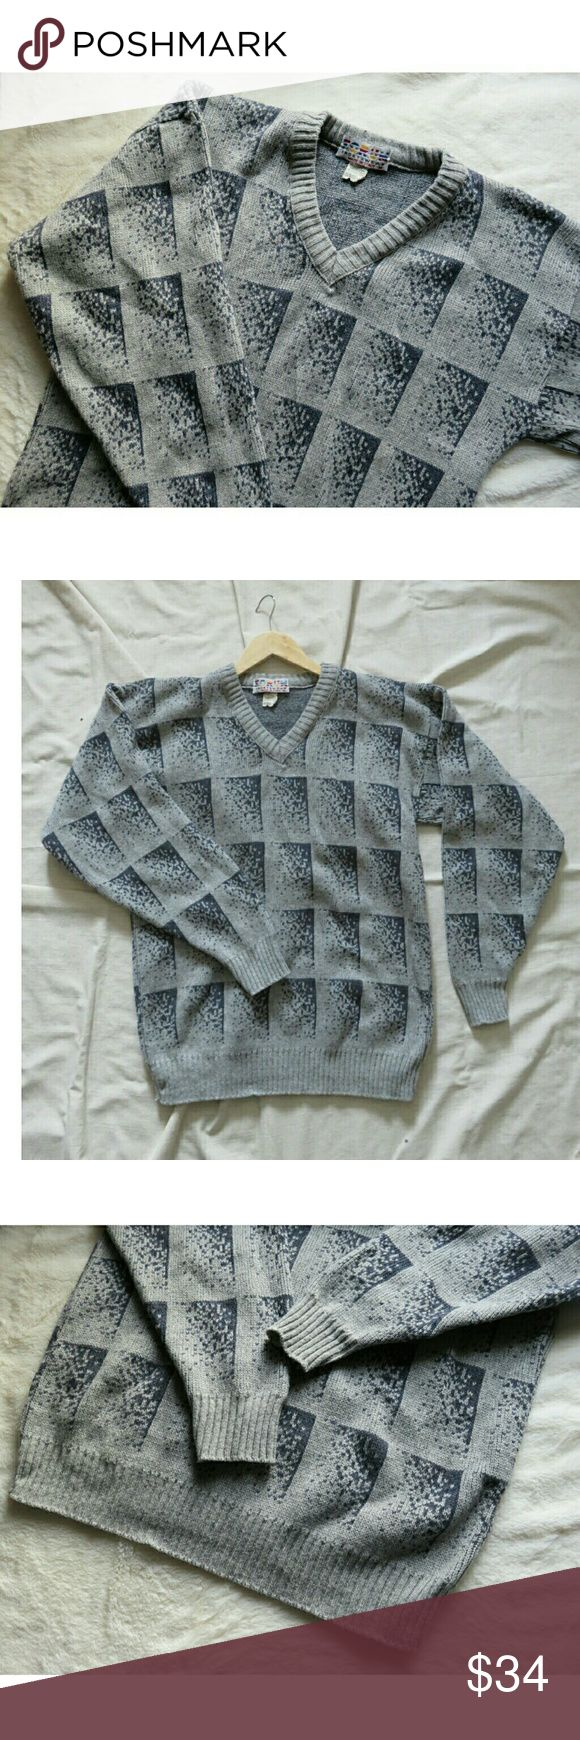 """Men's Vintage Italy Wool Sweater Gray Grid Med Awesome vintage sweater made in Italy from Forum Sportswear! All over grid/ geometric pattern in gray and white. V-neck, wide cuffs at sleeves. 60% wool, 20% acrylic, 15% polyester, 5% other yarns. Unisex, Size Men's Medium, Ladies oversized Medium/ Large. Measures lying flat approximately 21"""" across chest, 29"""" from shoulder to waist, and 24"""" from shoulder down sleeve to wrist. Excellent condition, like new! Consignment item. Ships fast! Thank…"""